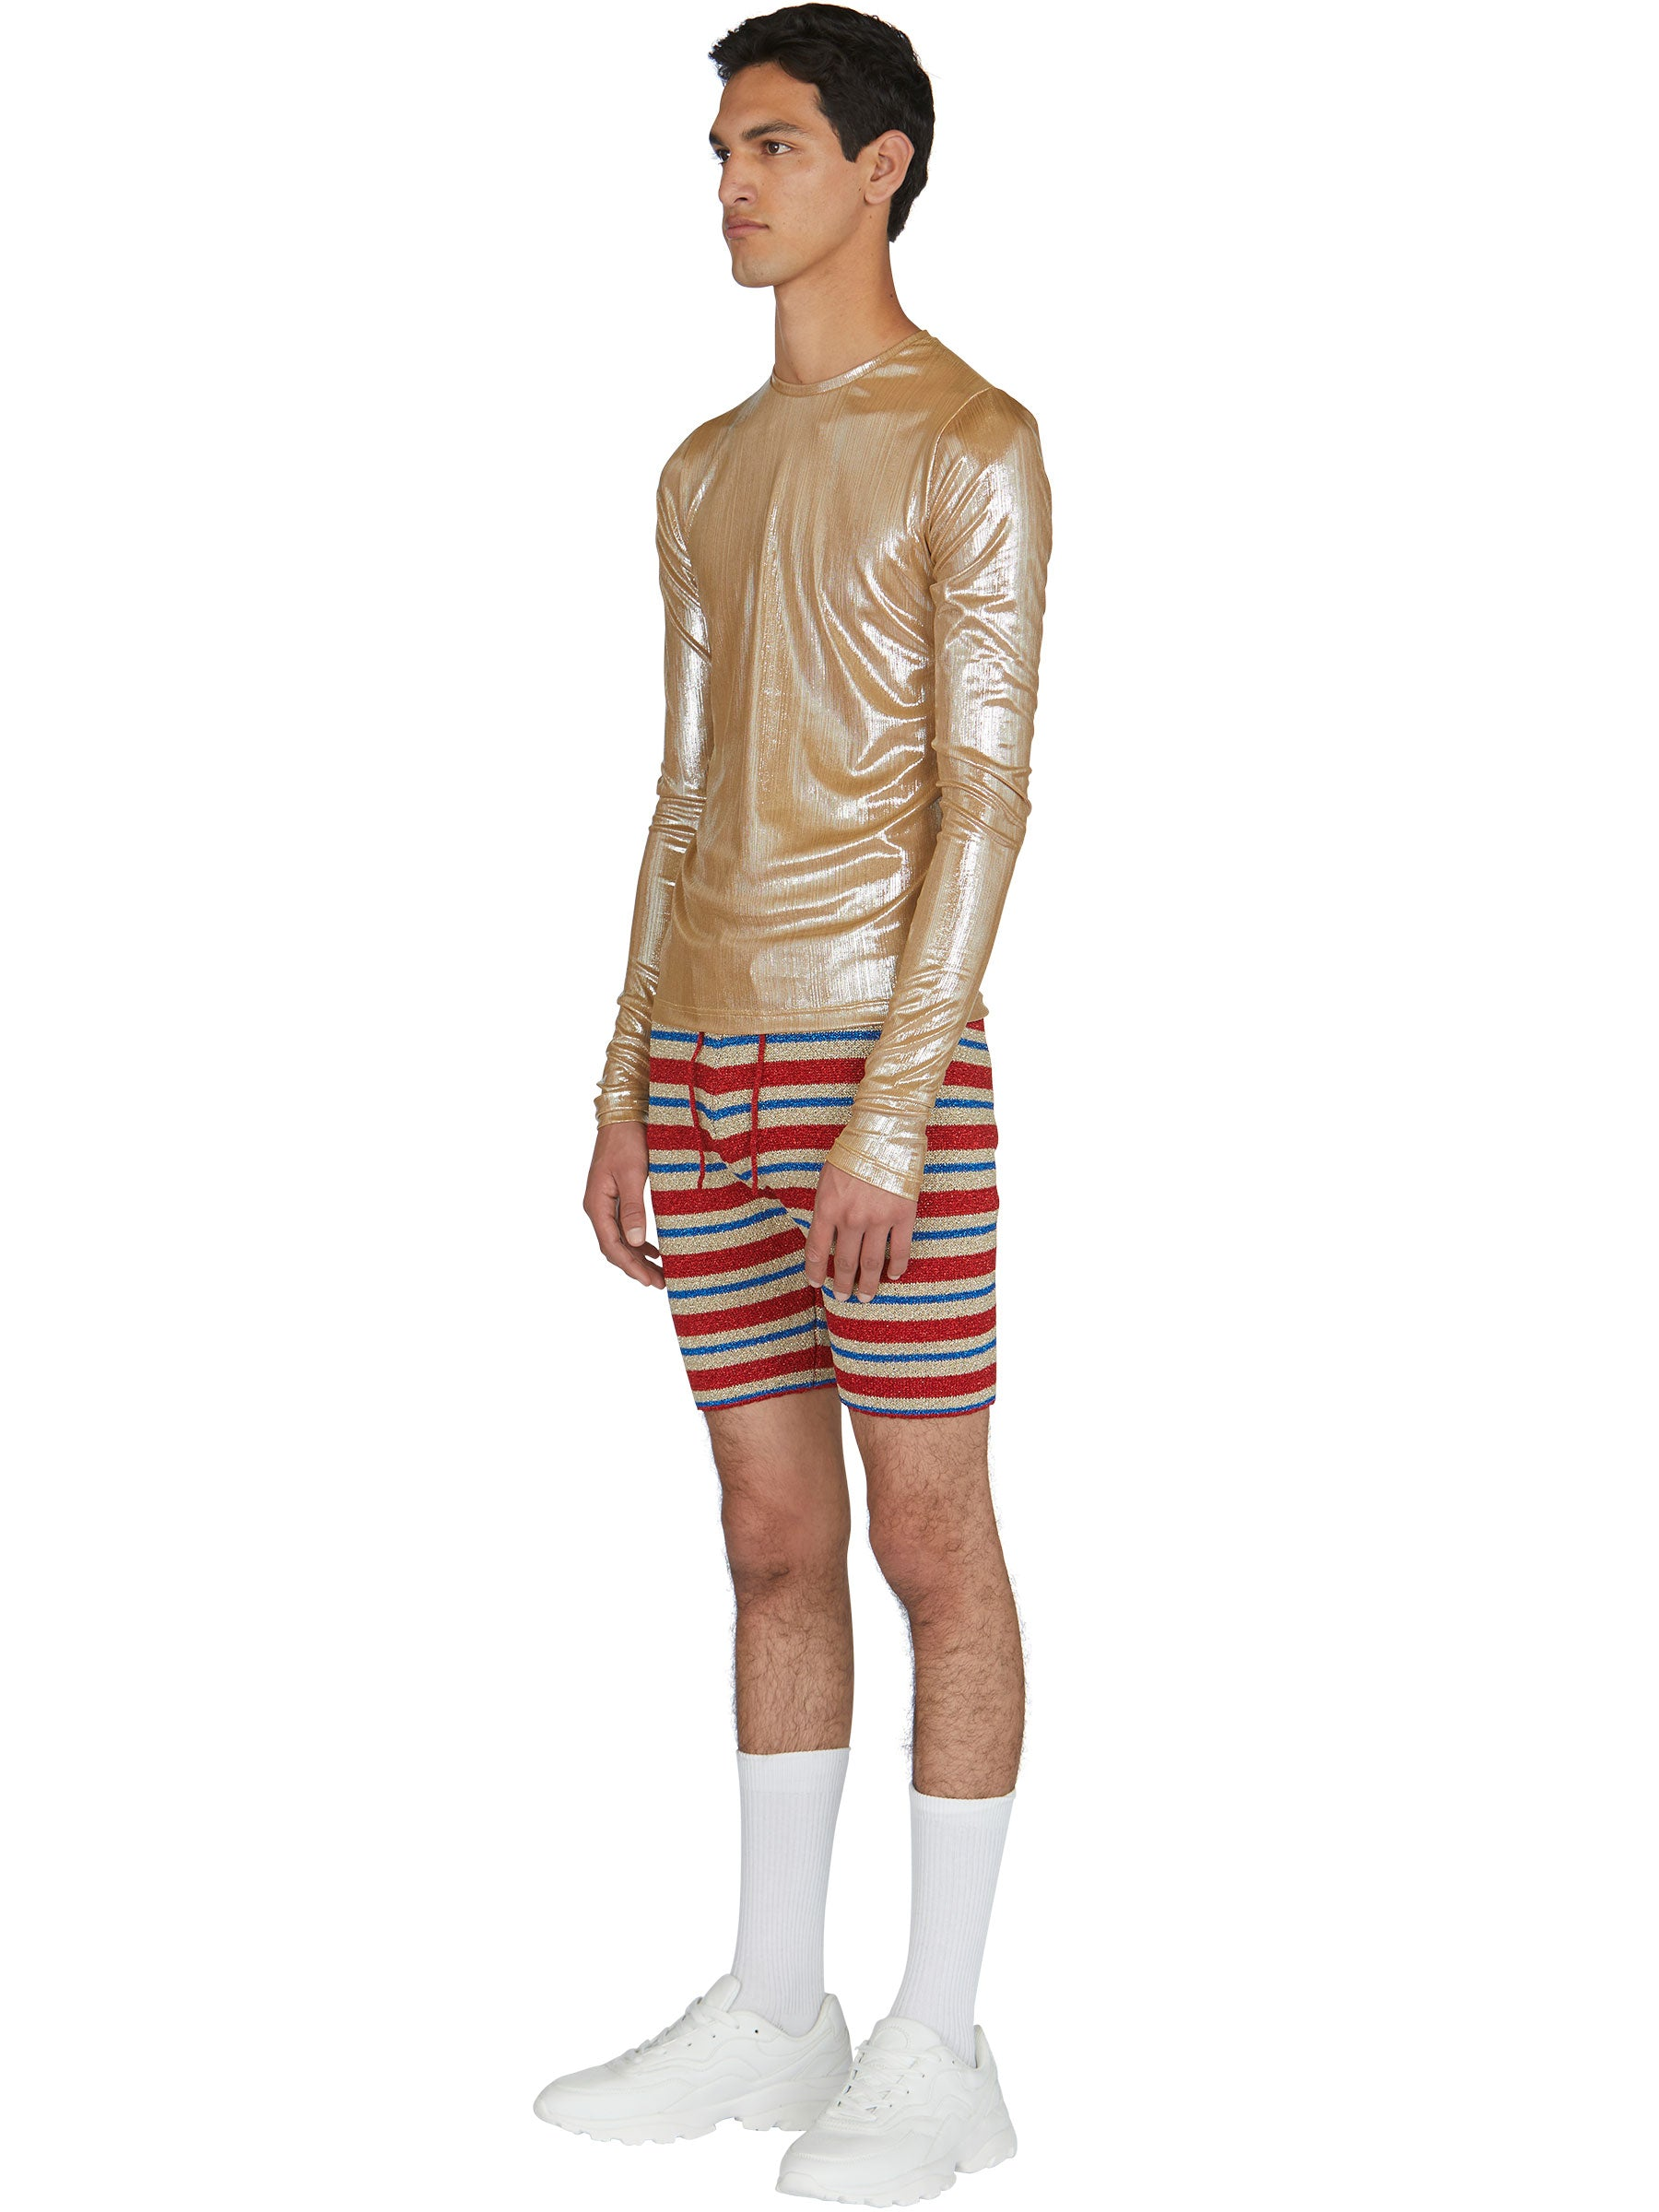 odd92 Shop Lazoschmidl Spring/Summer 2019 Menswear Blanche Foil Pleat Top - 4